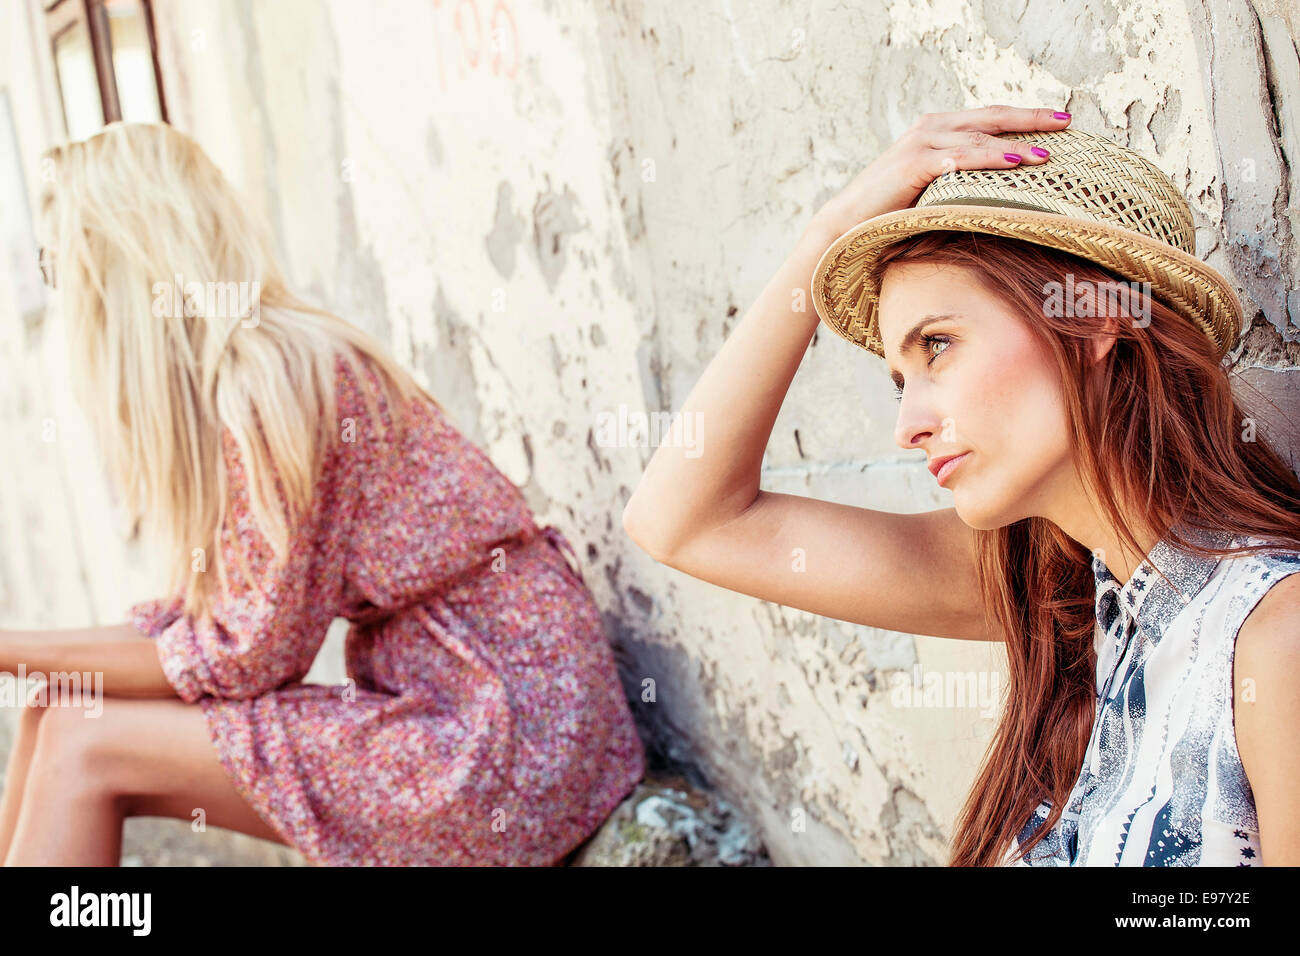 Two bored women with luggage waiting outdoors - Stock Image